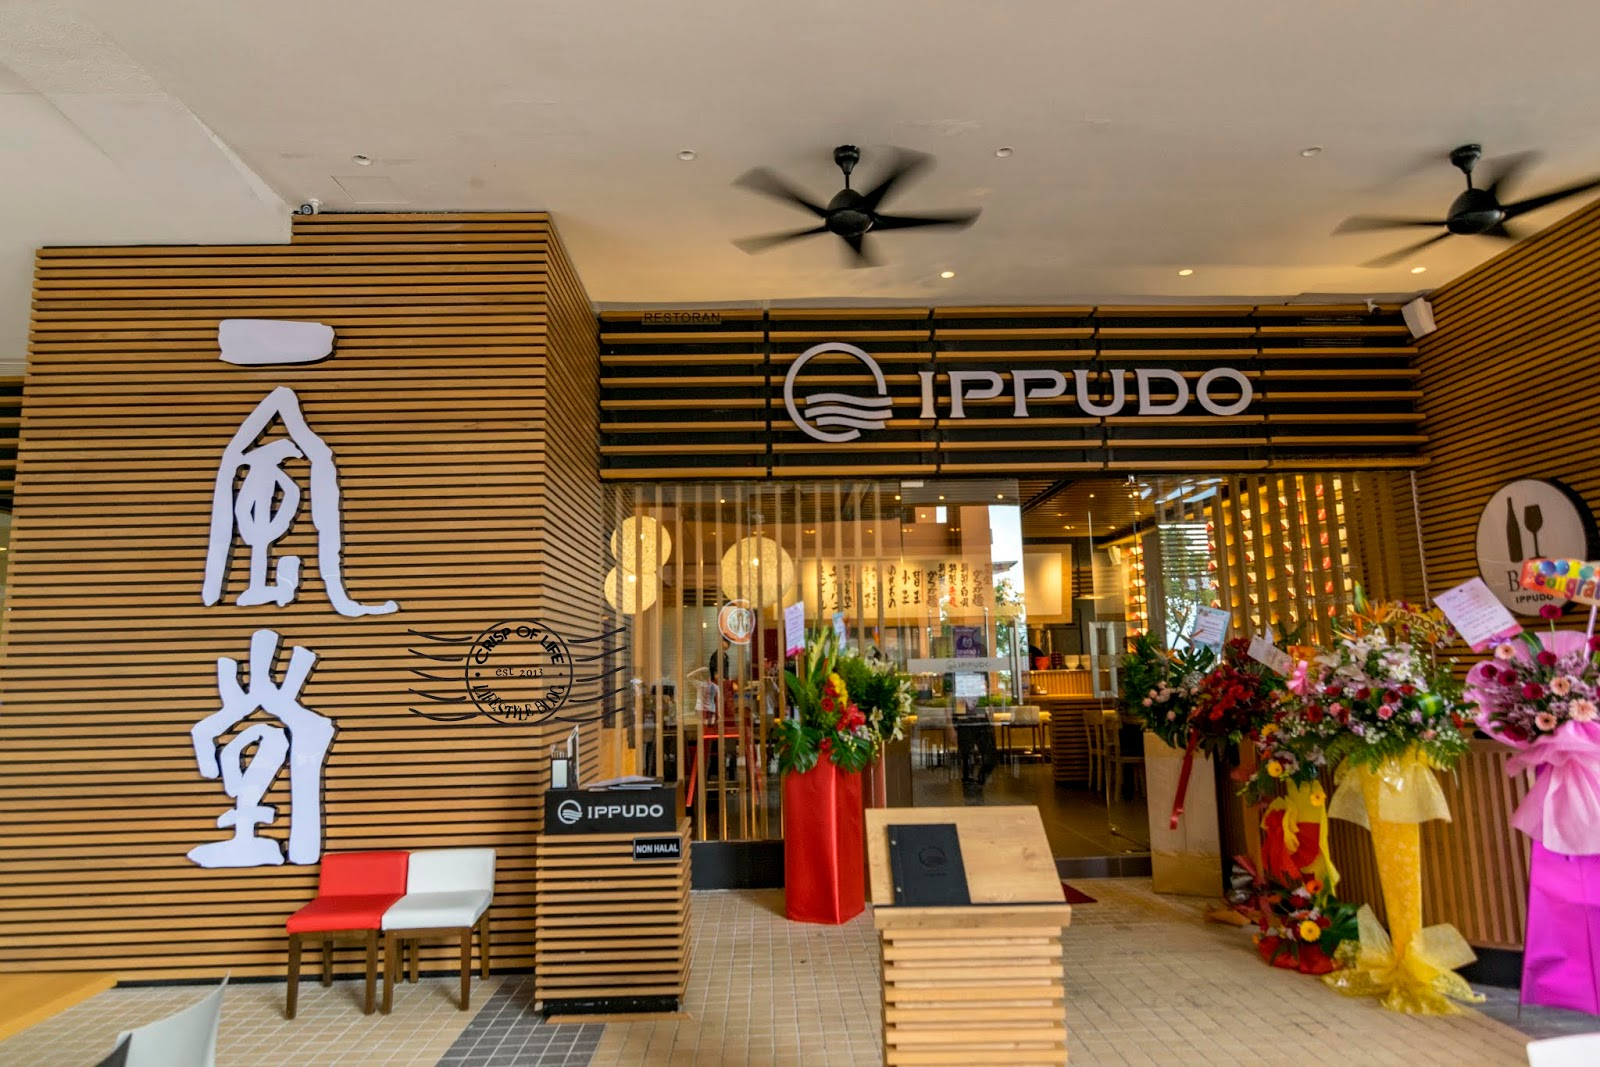 Ippudo 一风堂 the Malaysia's 4th Outlet @ Gurney Plaza, Penang